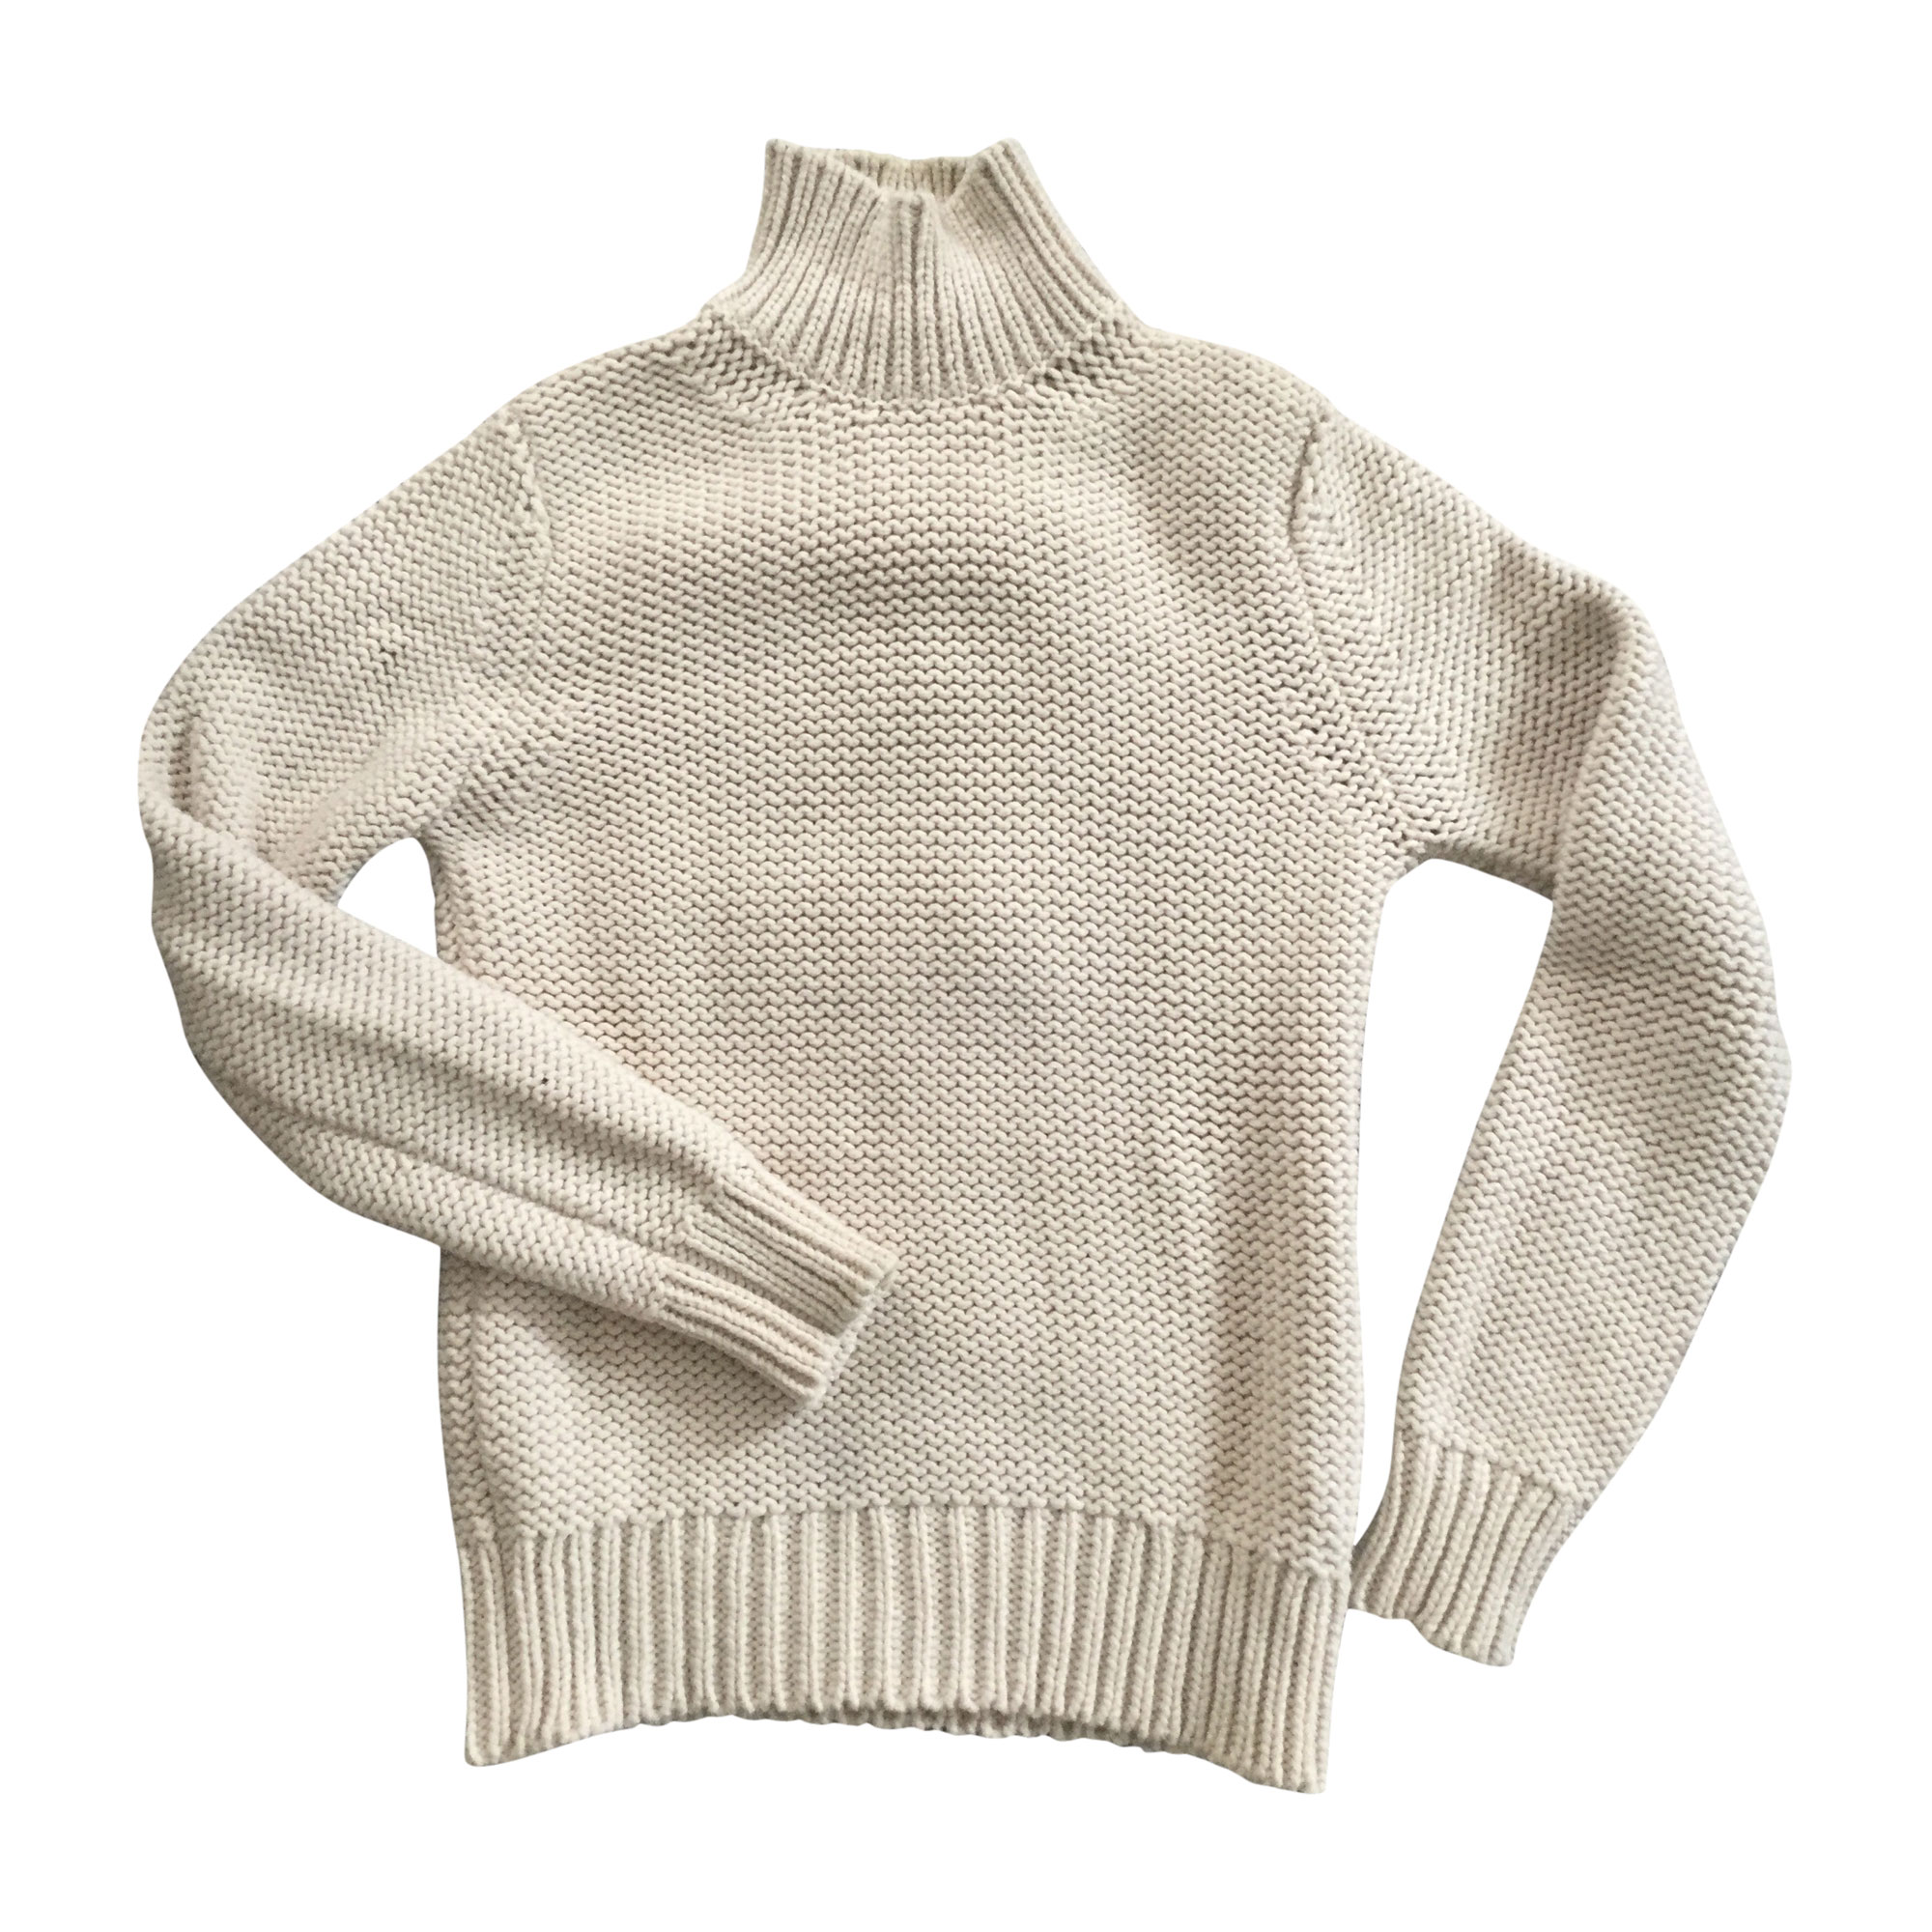 Sweater LOUIS VUITTON White, off-white, ecru